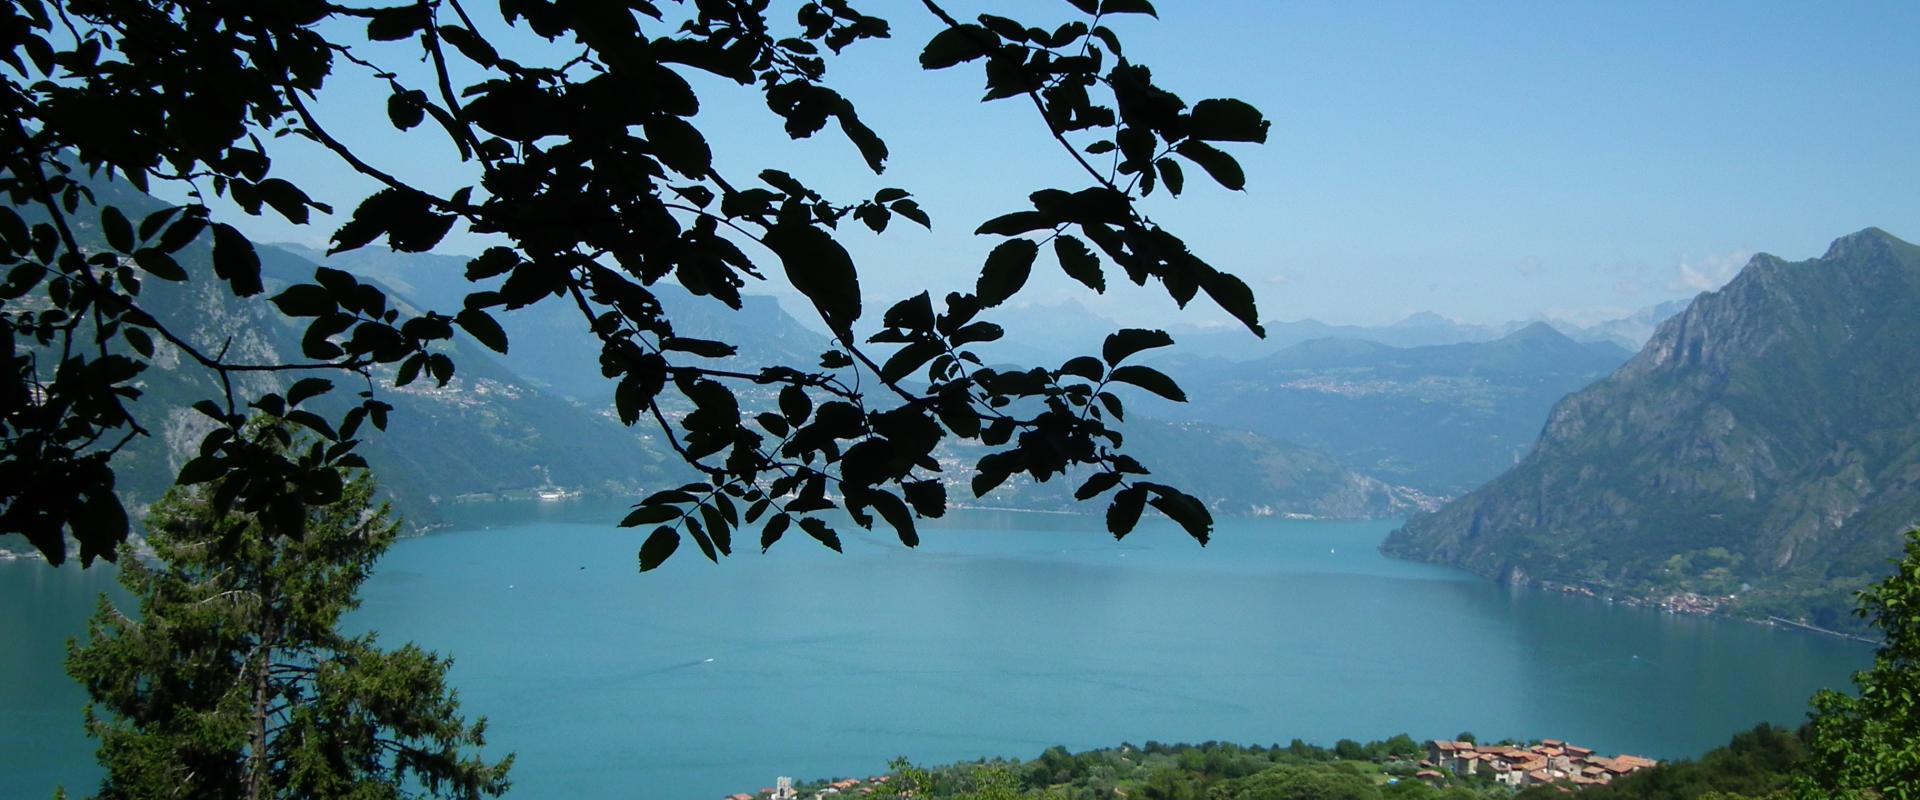 trekking experience on Mmonte Isola